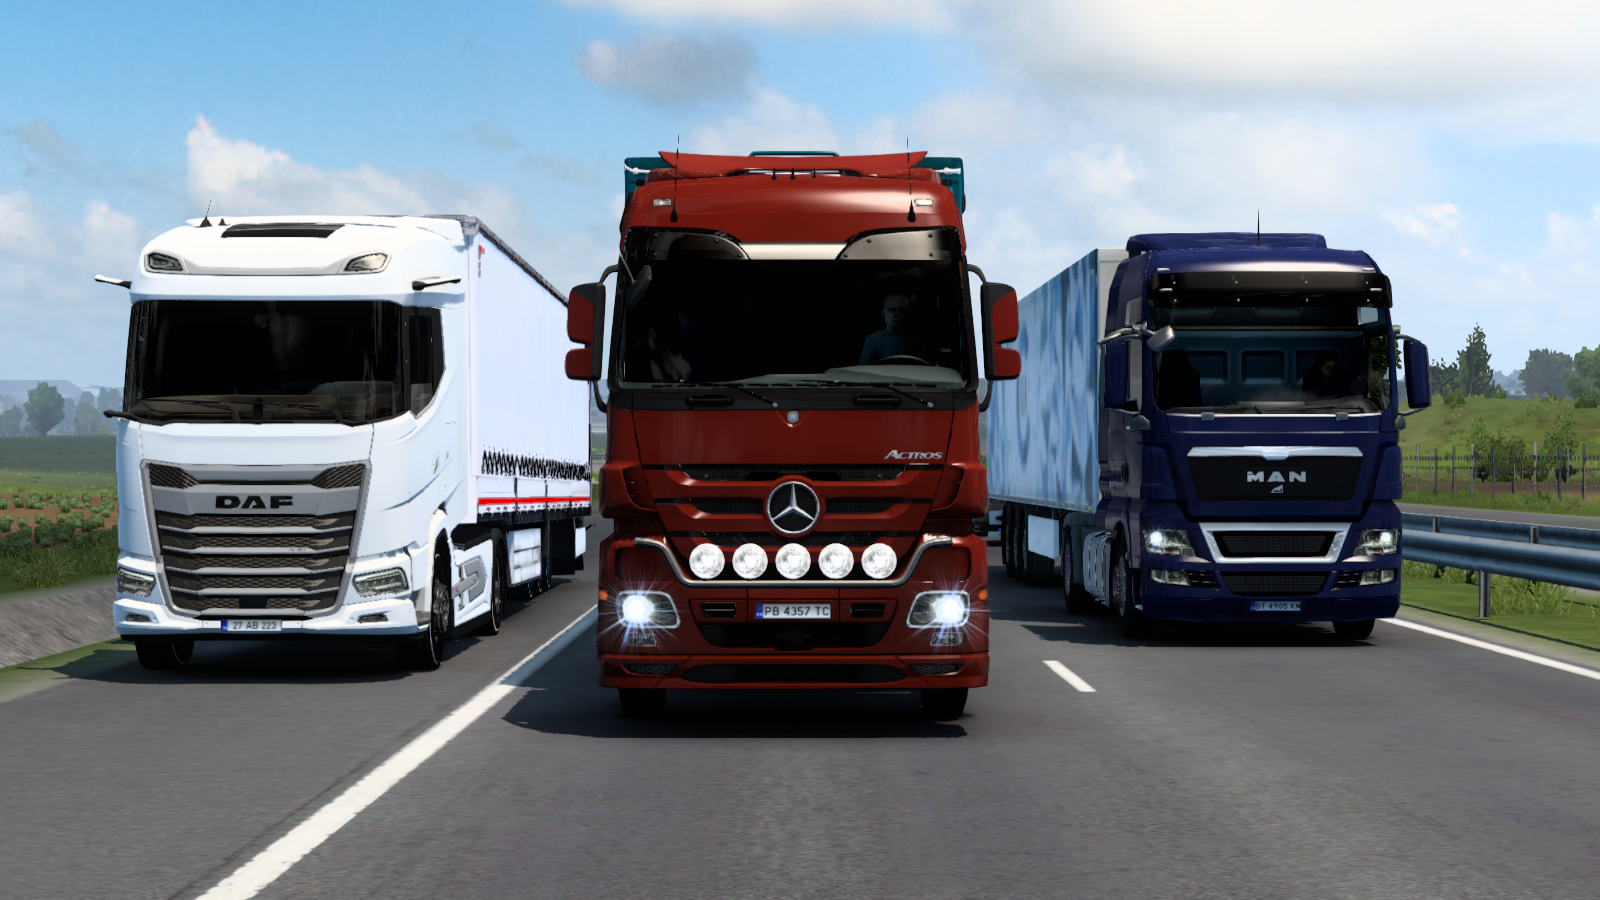 ets2_20210920_210156_00.png